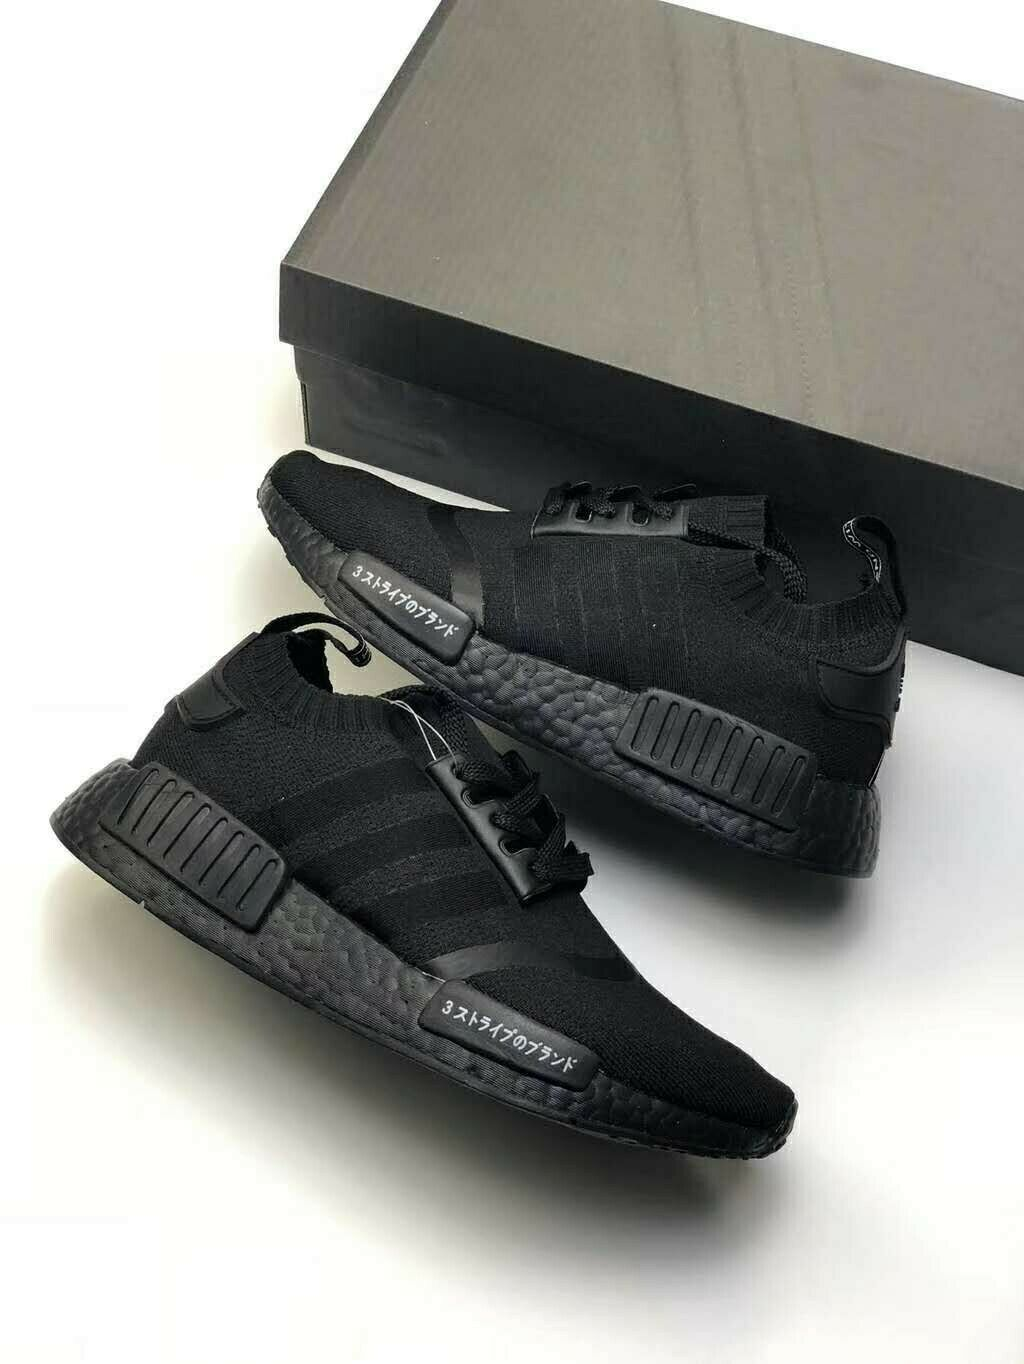 4548c229b1320 adidas NMD R1 Japan Triple Black Primeknit Bz0220 for sale online